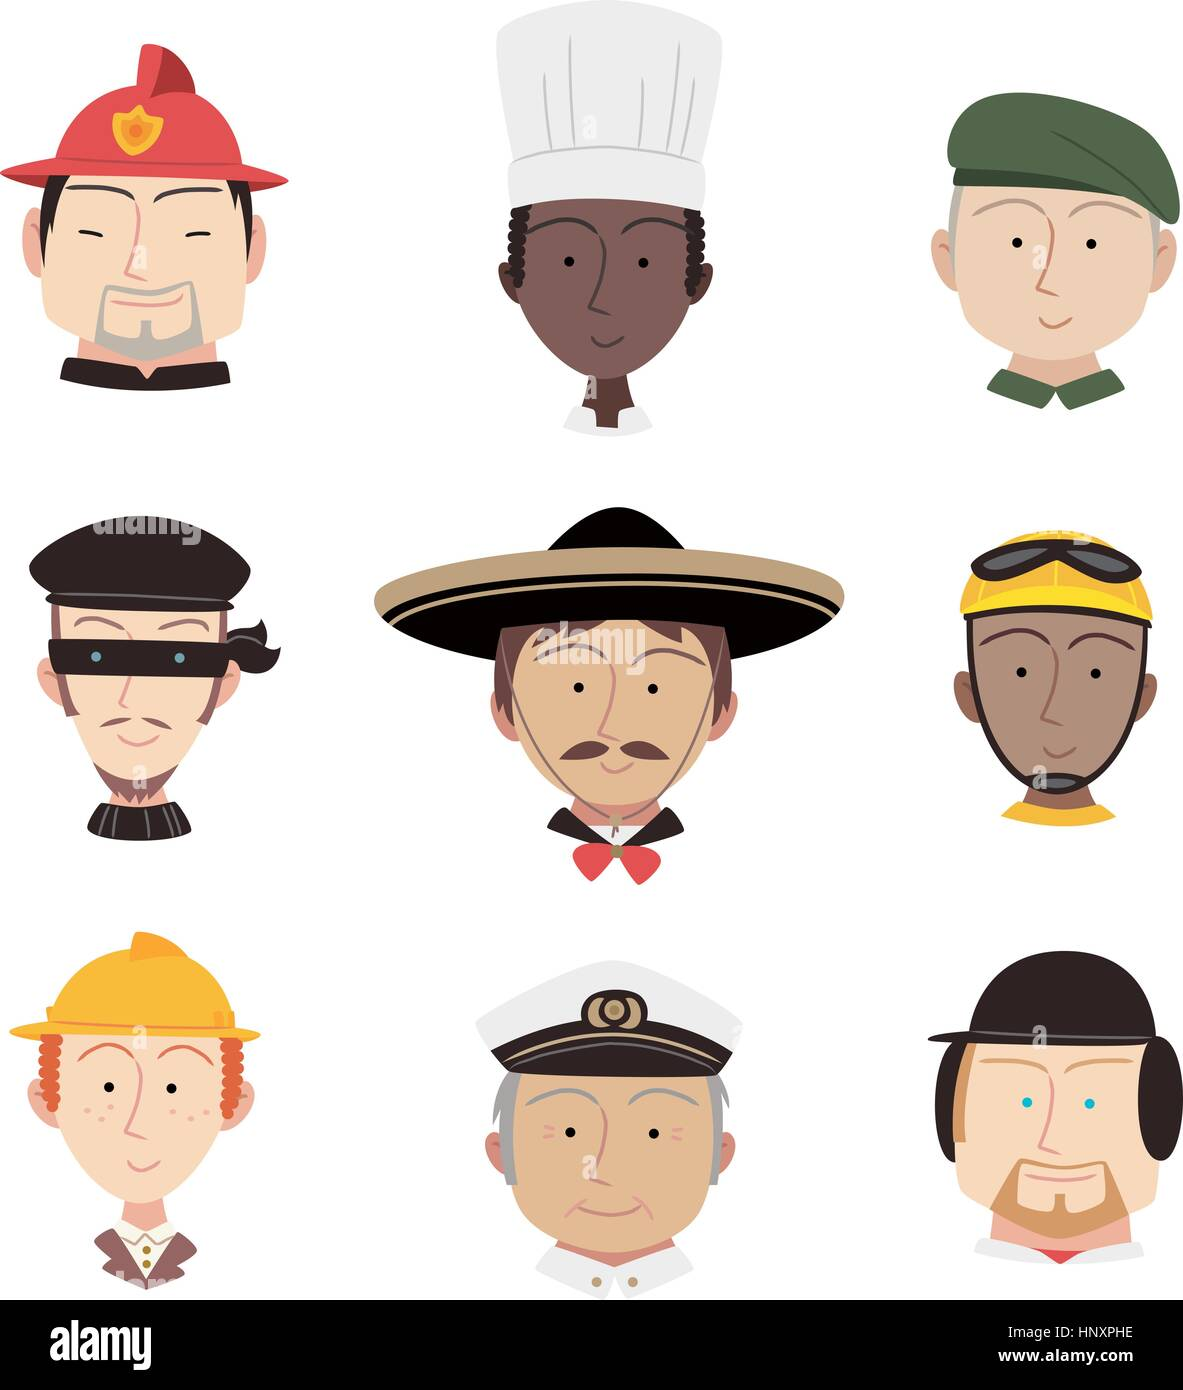 Head and Shoulder Professional People Profile avatar, with fireman, chef, military man, captain, cyclist, fire fighter, - Stock Image